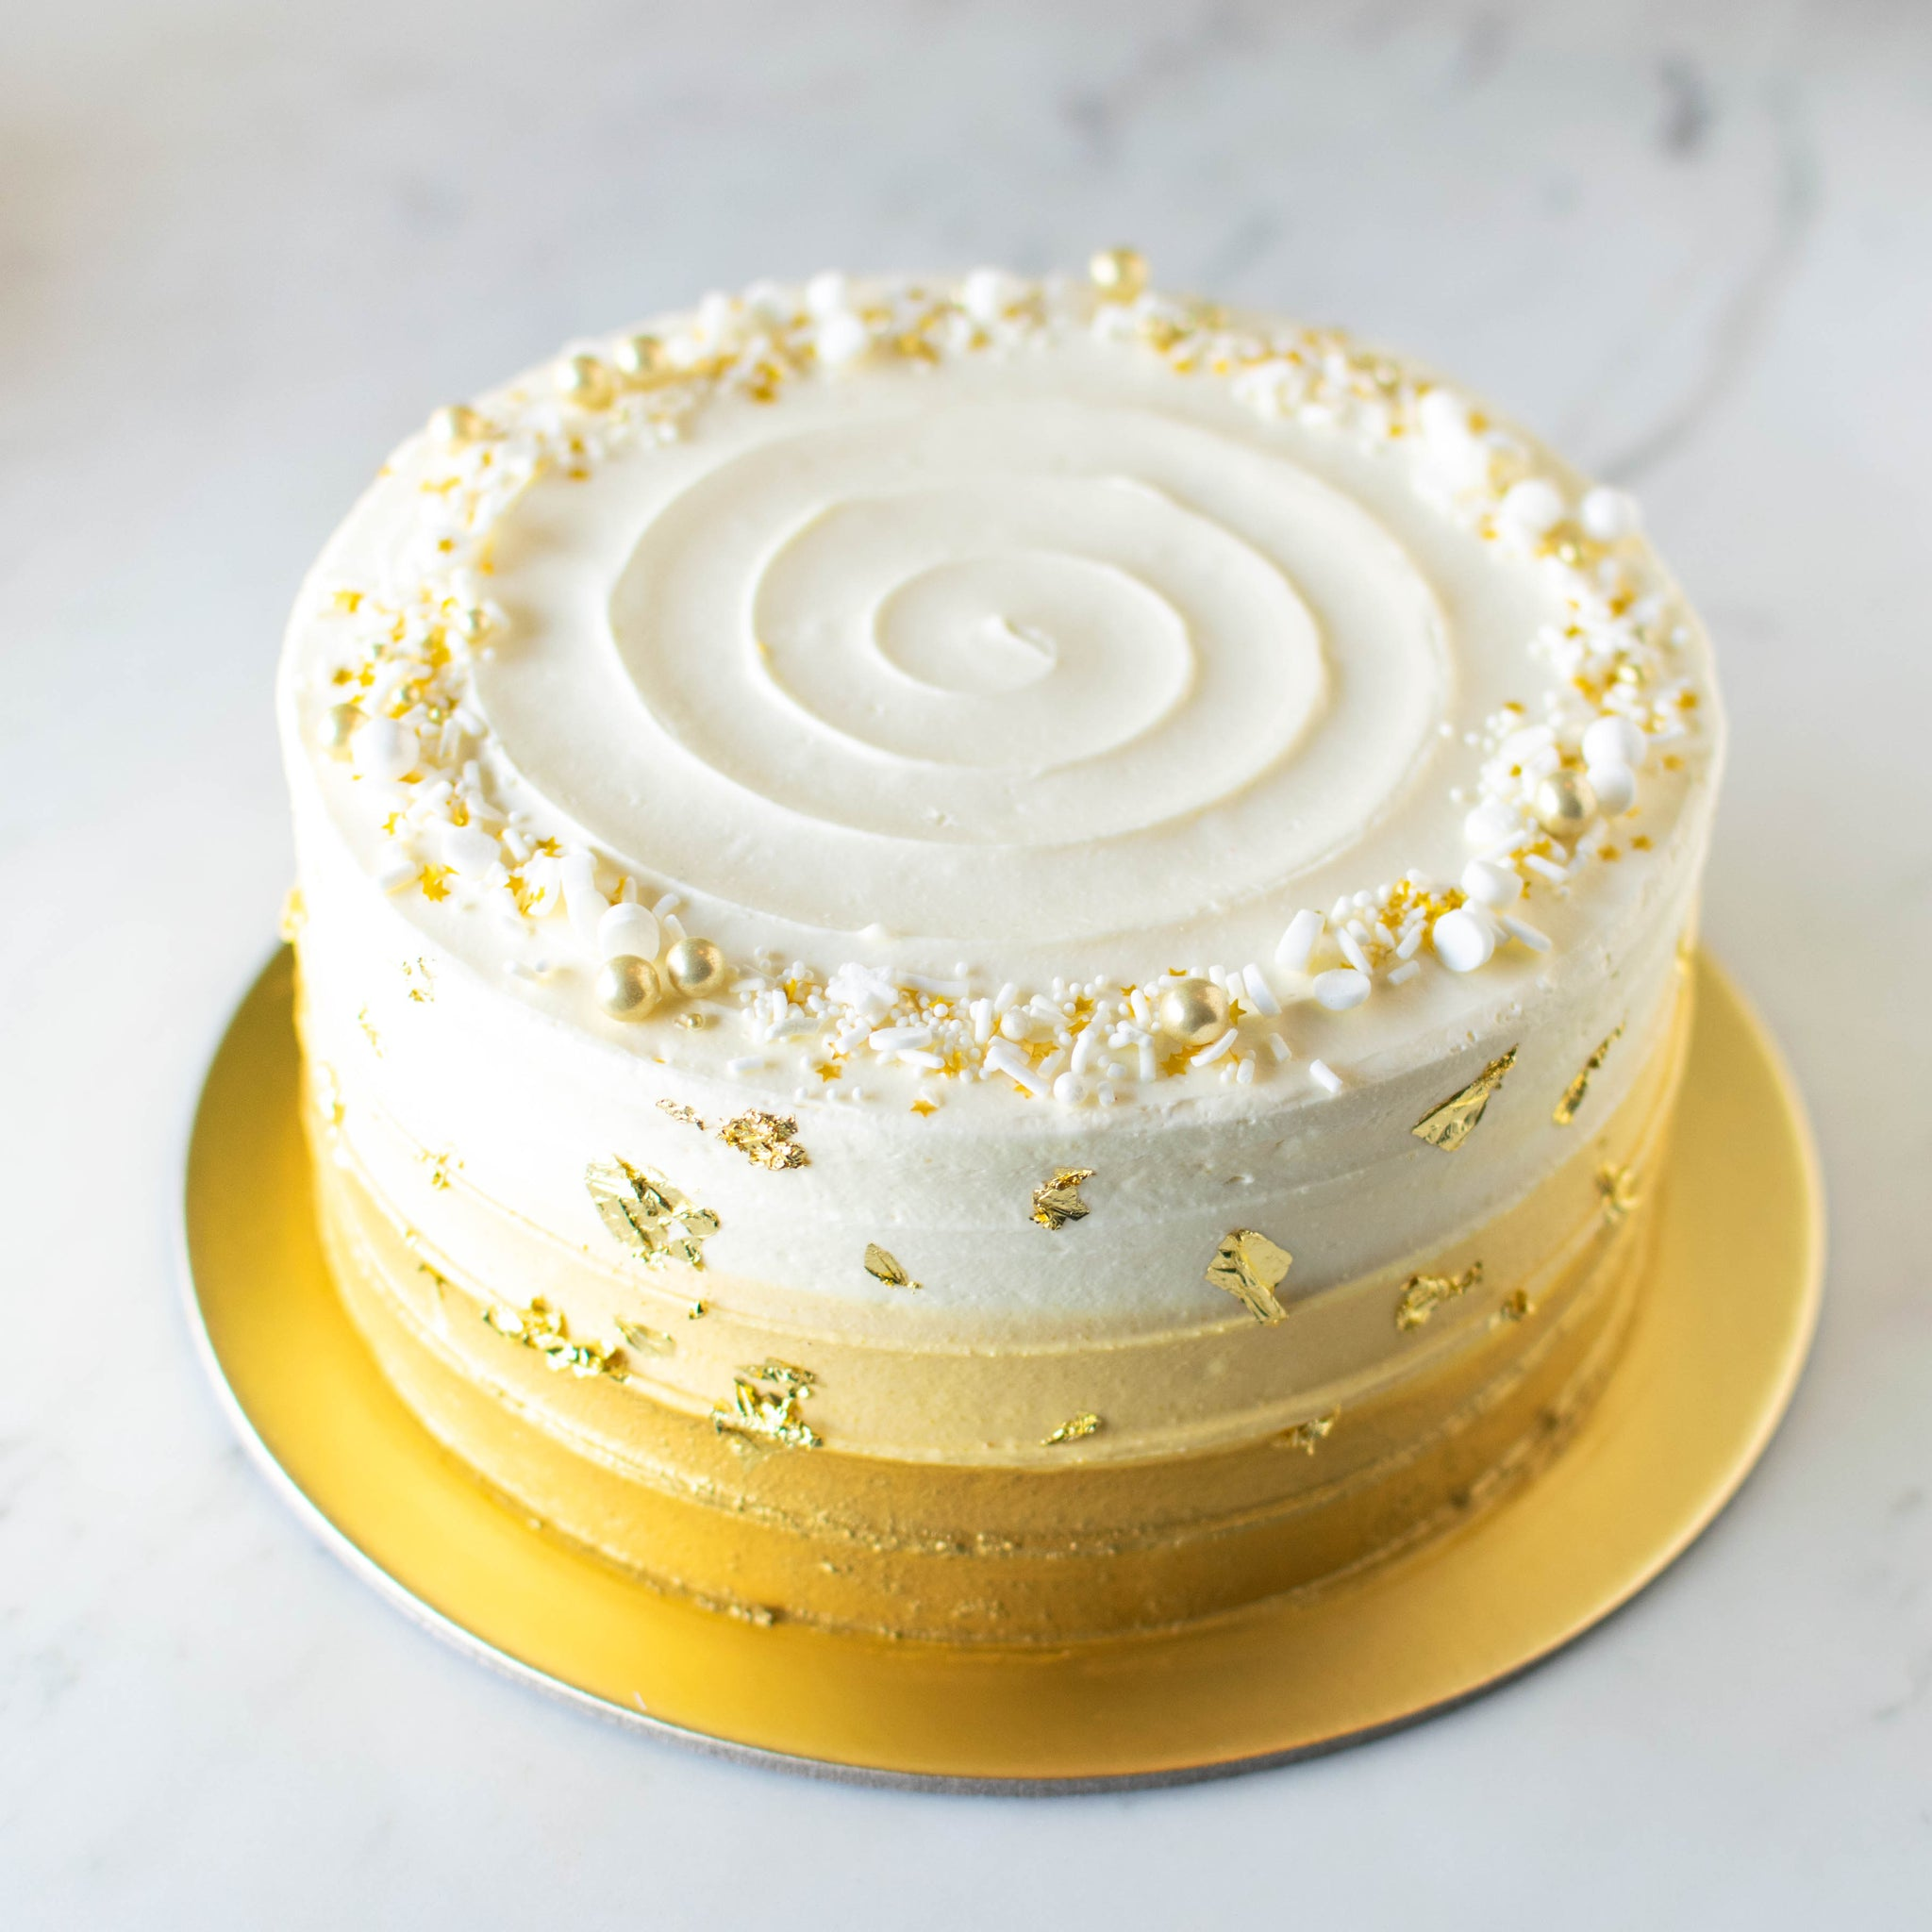 Shimmery Ombre Cake with Gold Leaves - Custom Bakes by Edith Patisserie